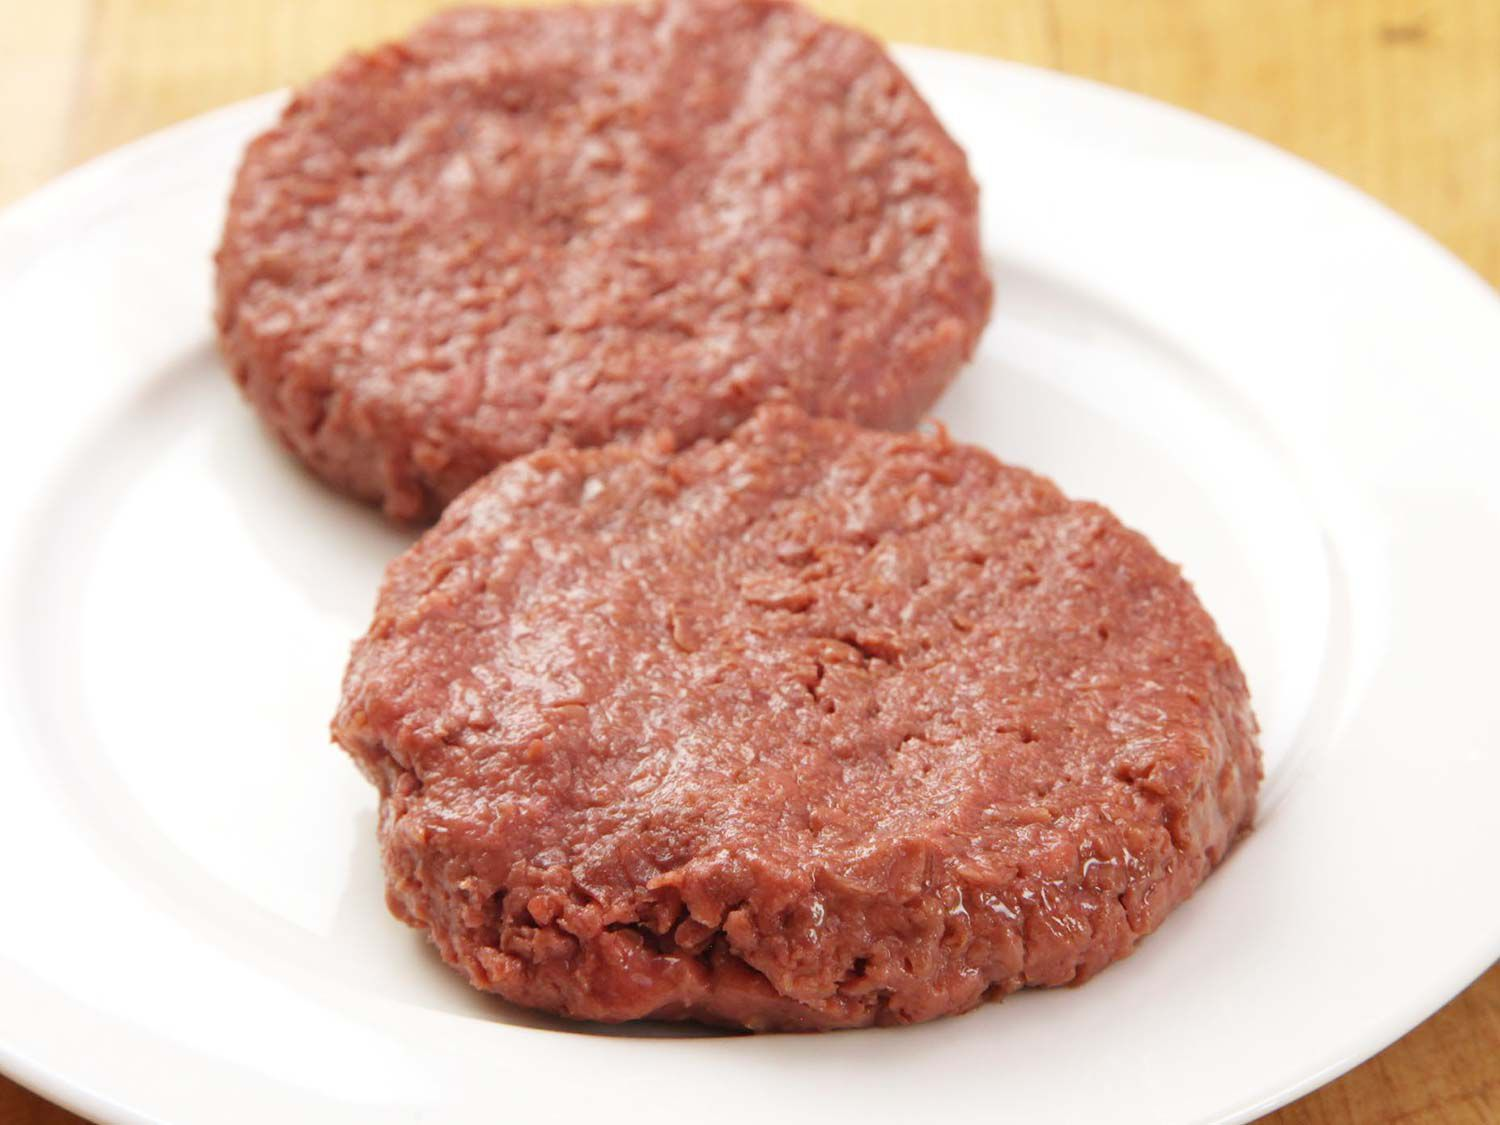 Two uncooked patties of Beyond Meat burger on a plate.